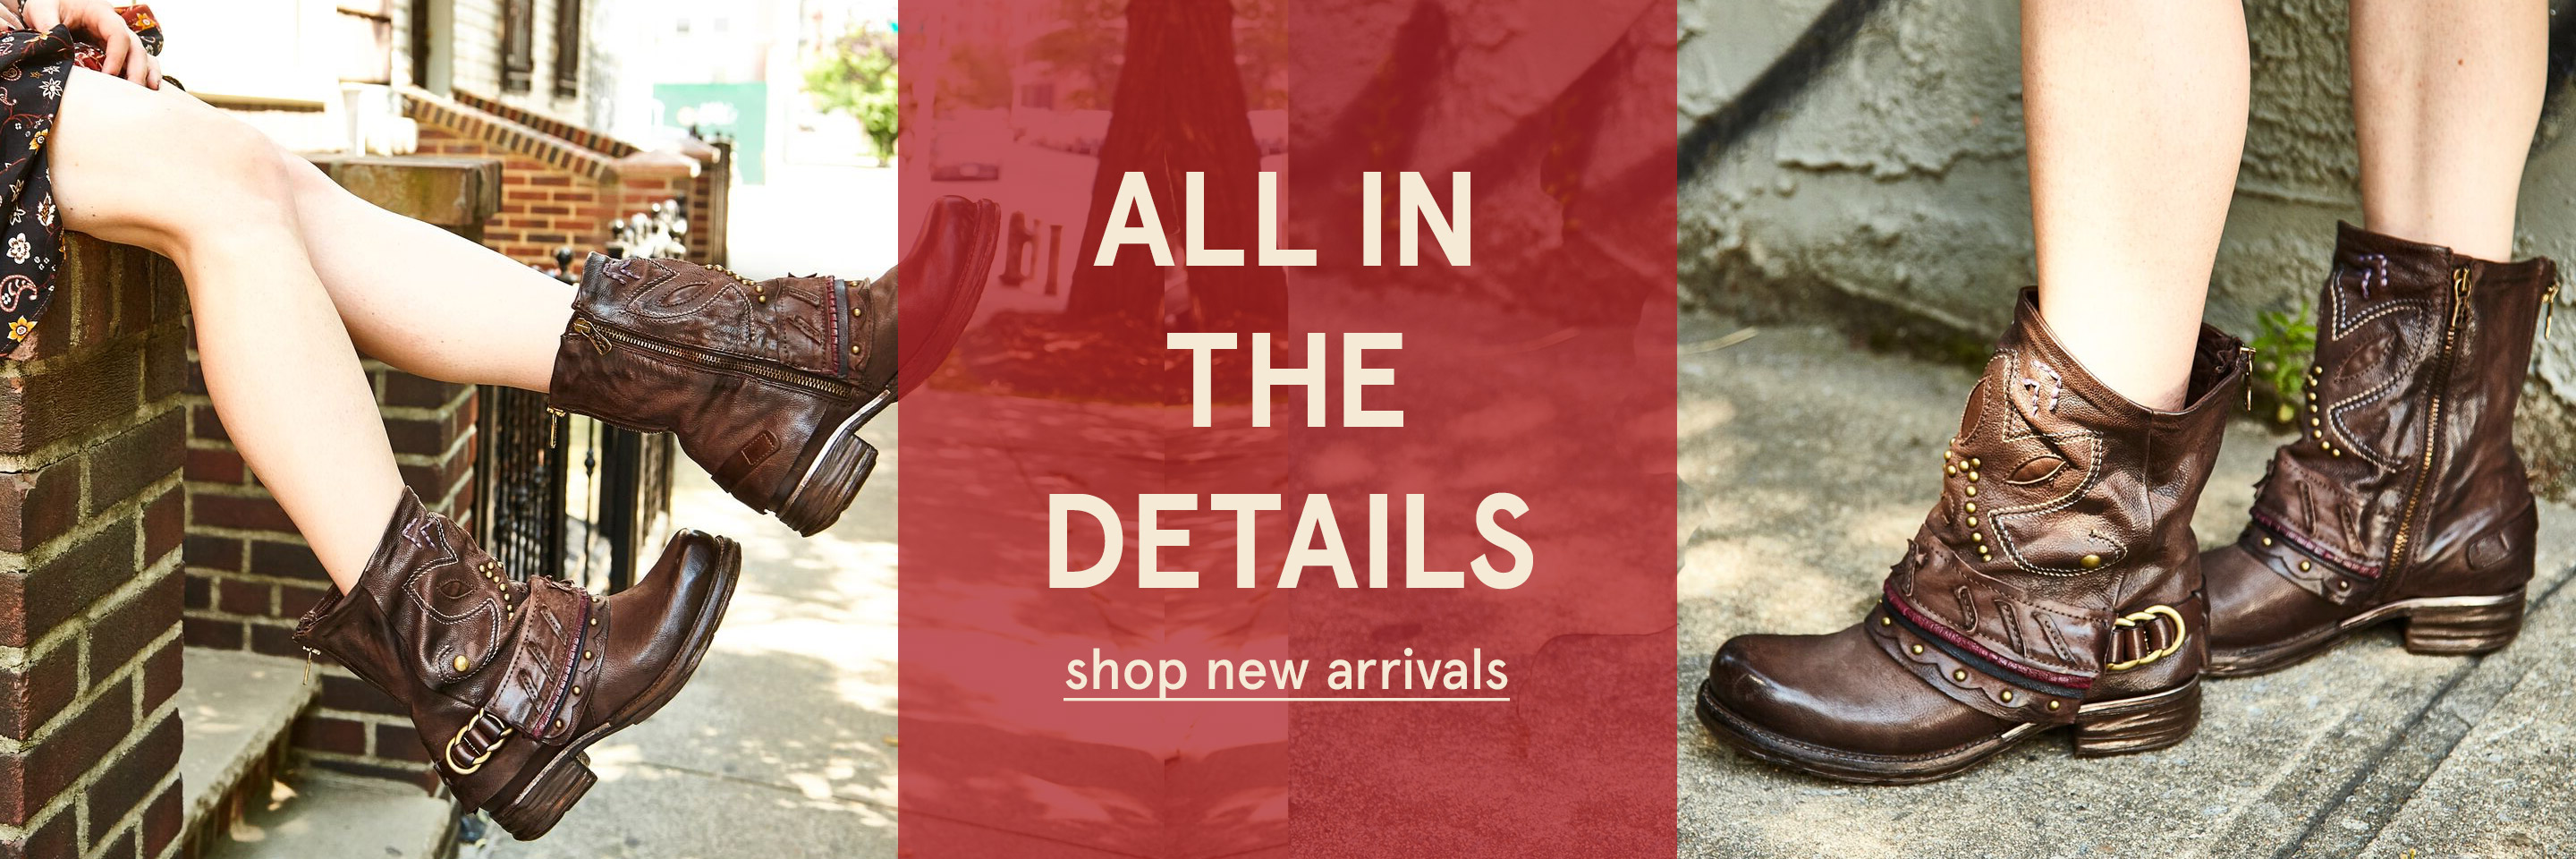 All In The Details - Shop New Arrivals